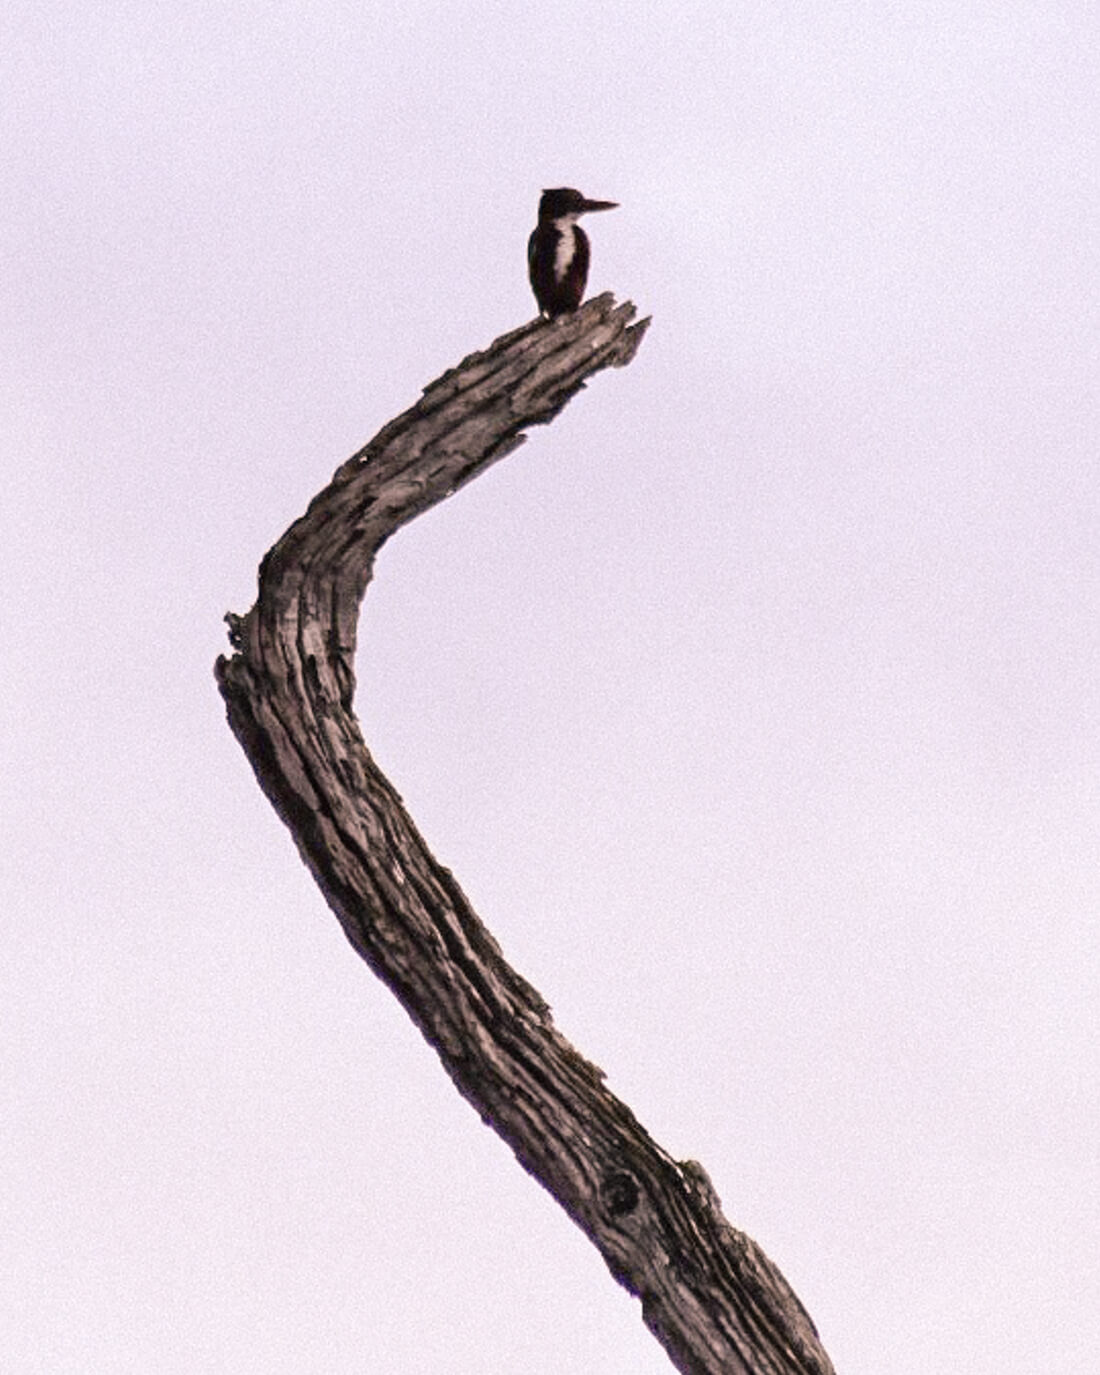 A black kingfisher resting on a dead branch